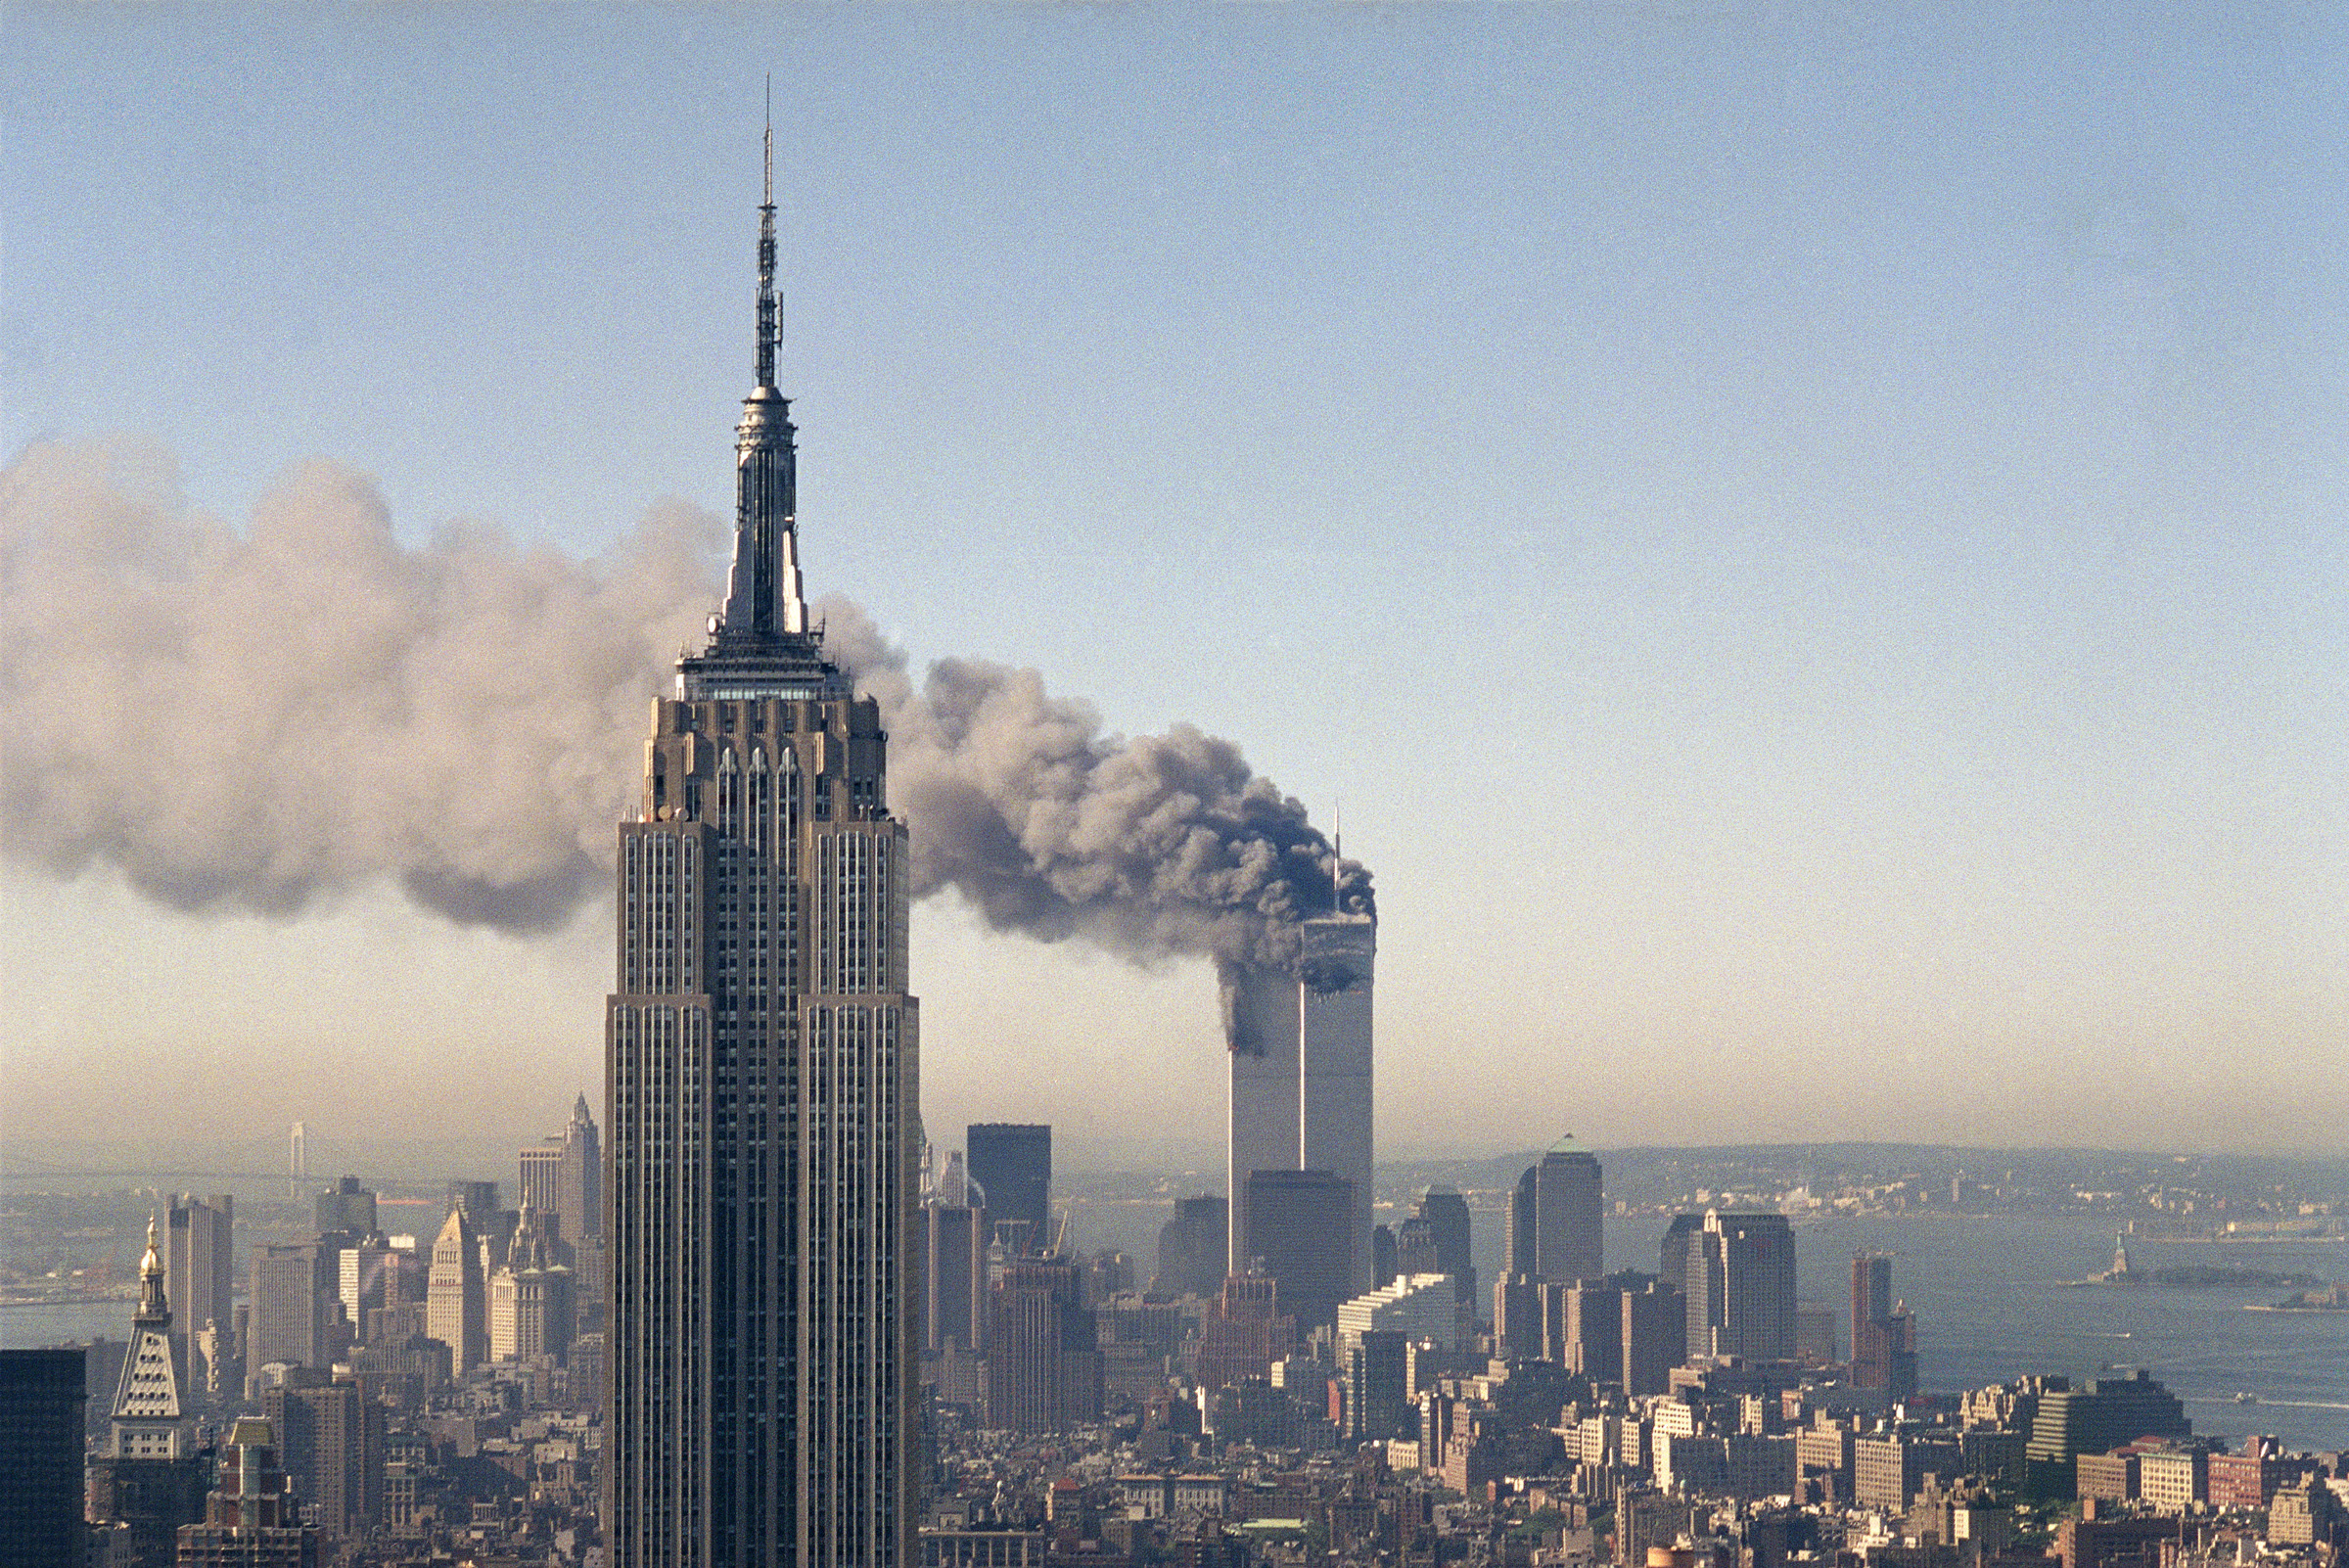 The twin towers of the World Trade Center burn behind the Empire State Building in New York after terrorists crashed two planes into the towers causing both to collapse, Sept. 11, 2001.